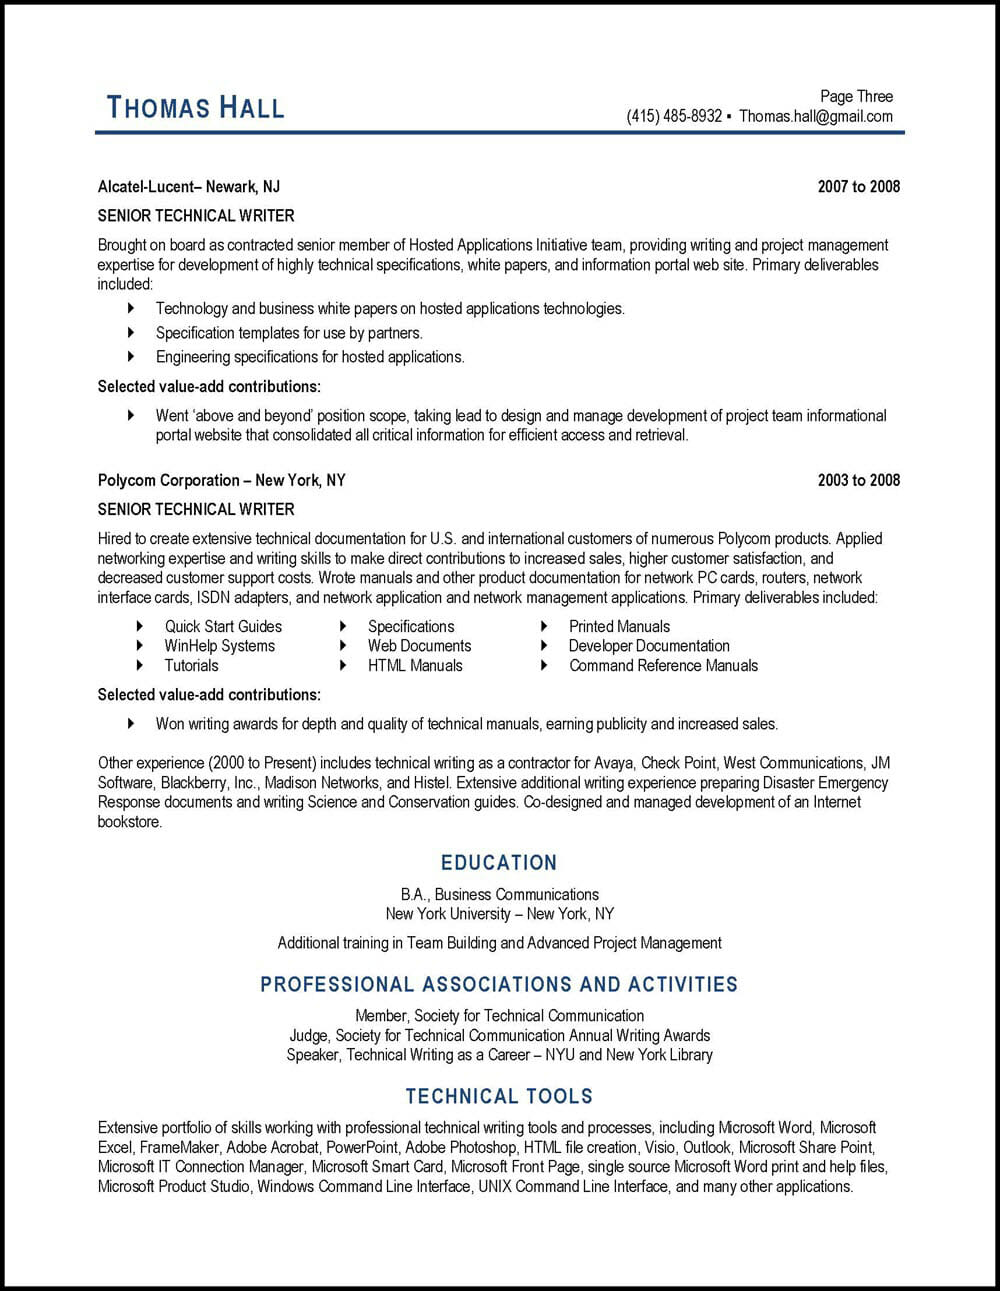 use resume writing service should you professional writers technical writer fast food Resume Professional Resume Writers